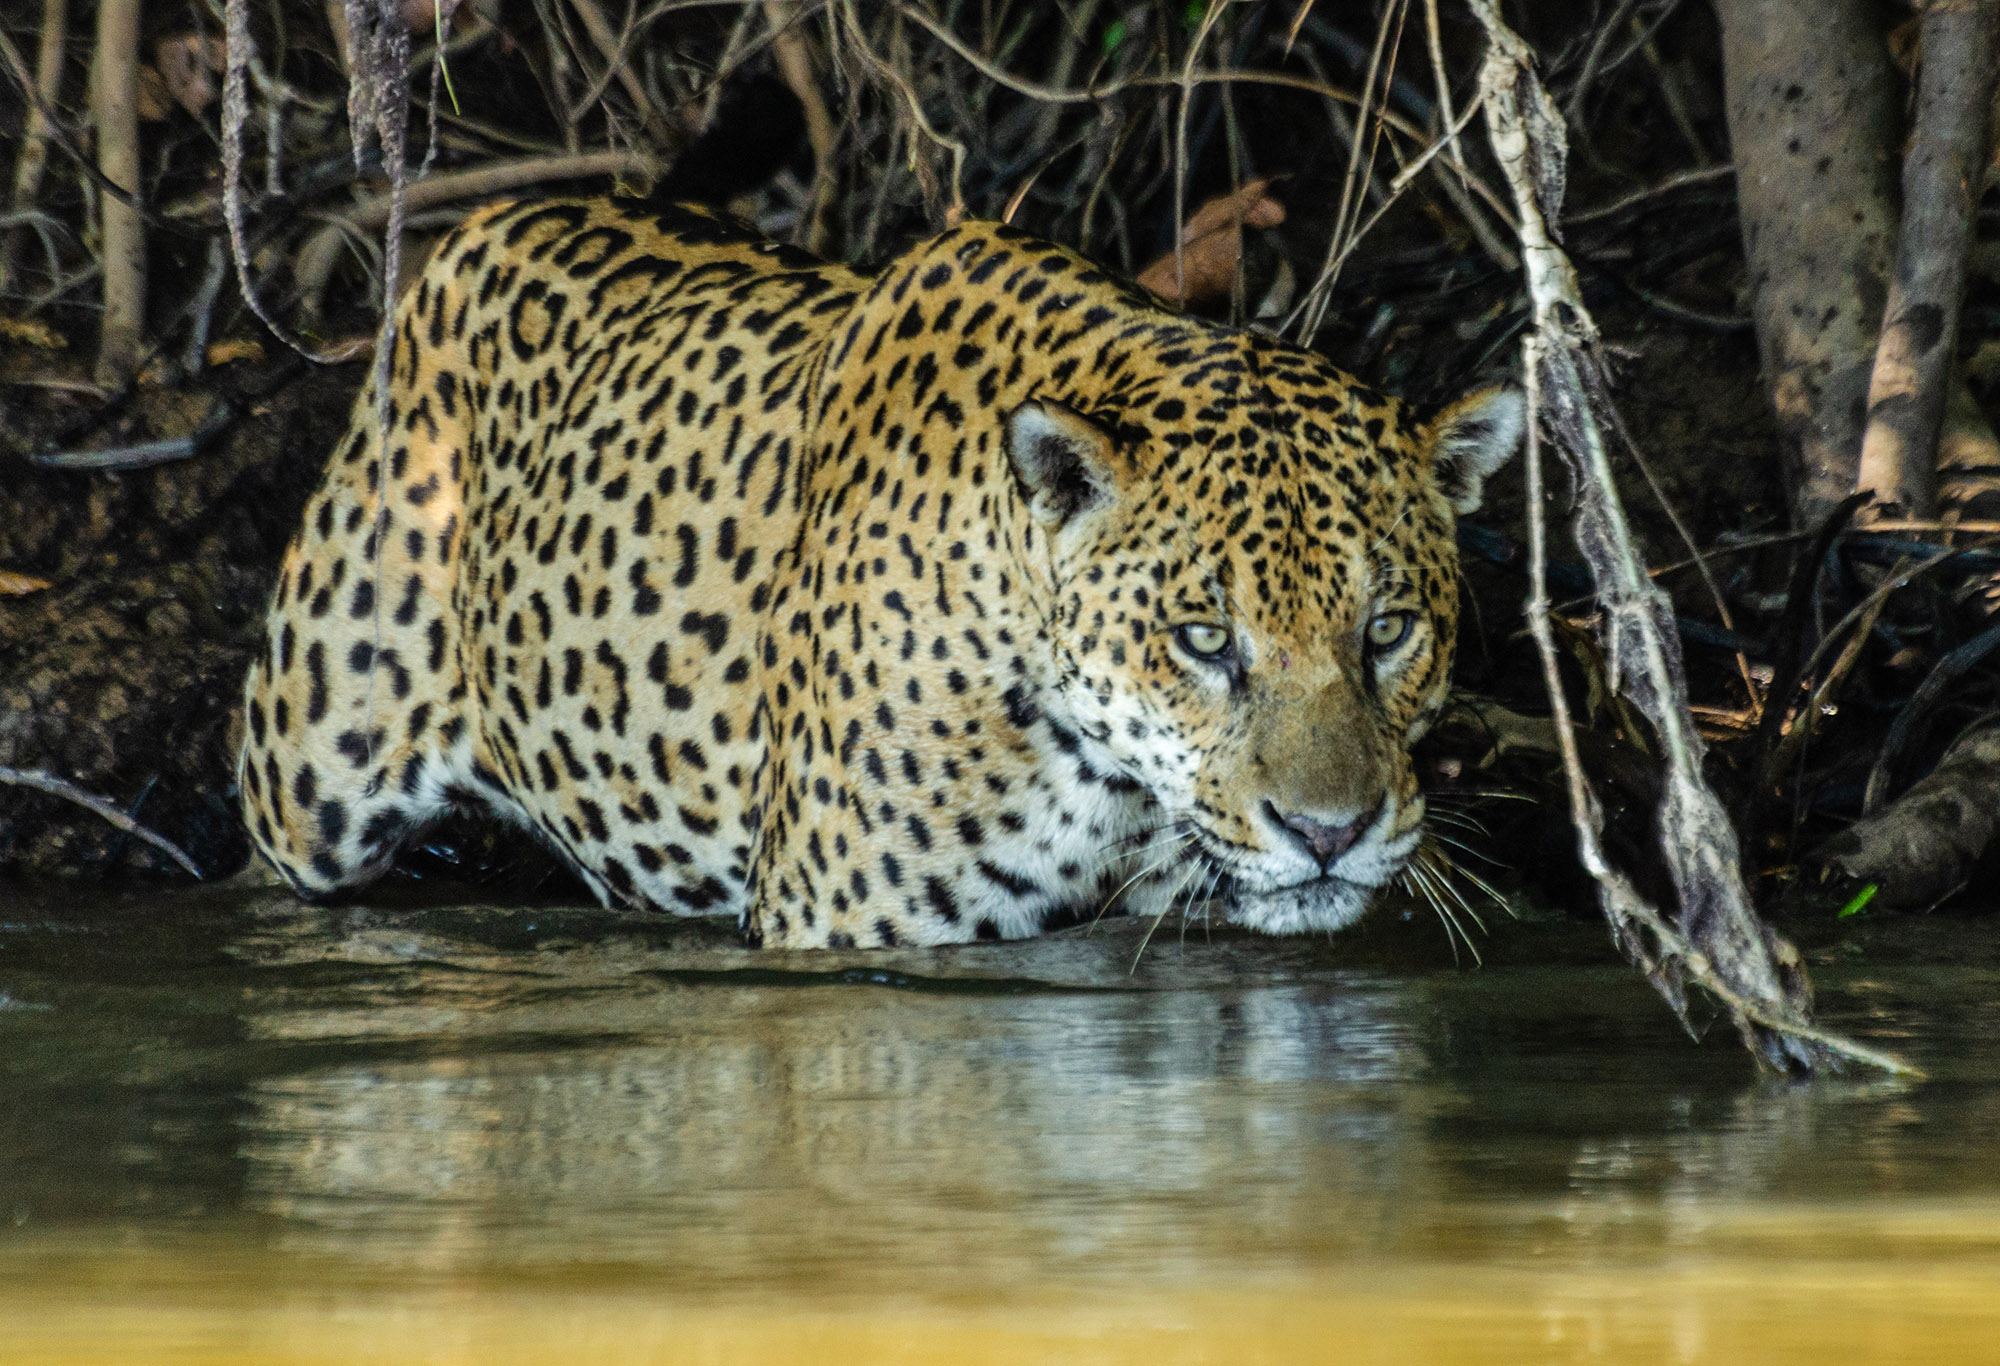 VIDEO: Sea-Type Jaguars: Isolated Big Cats Have Taken To Eating Fish